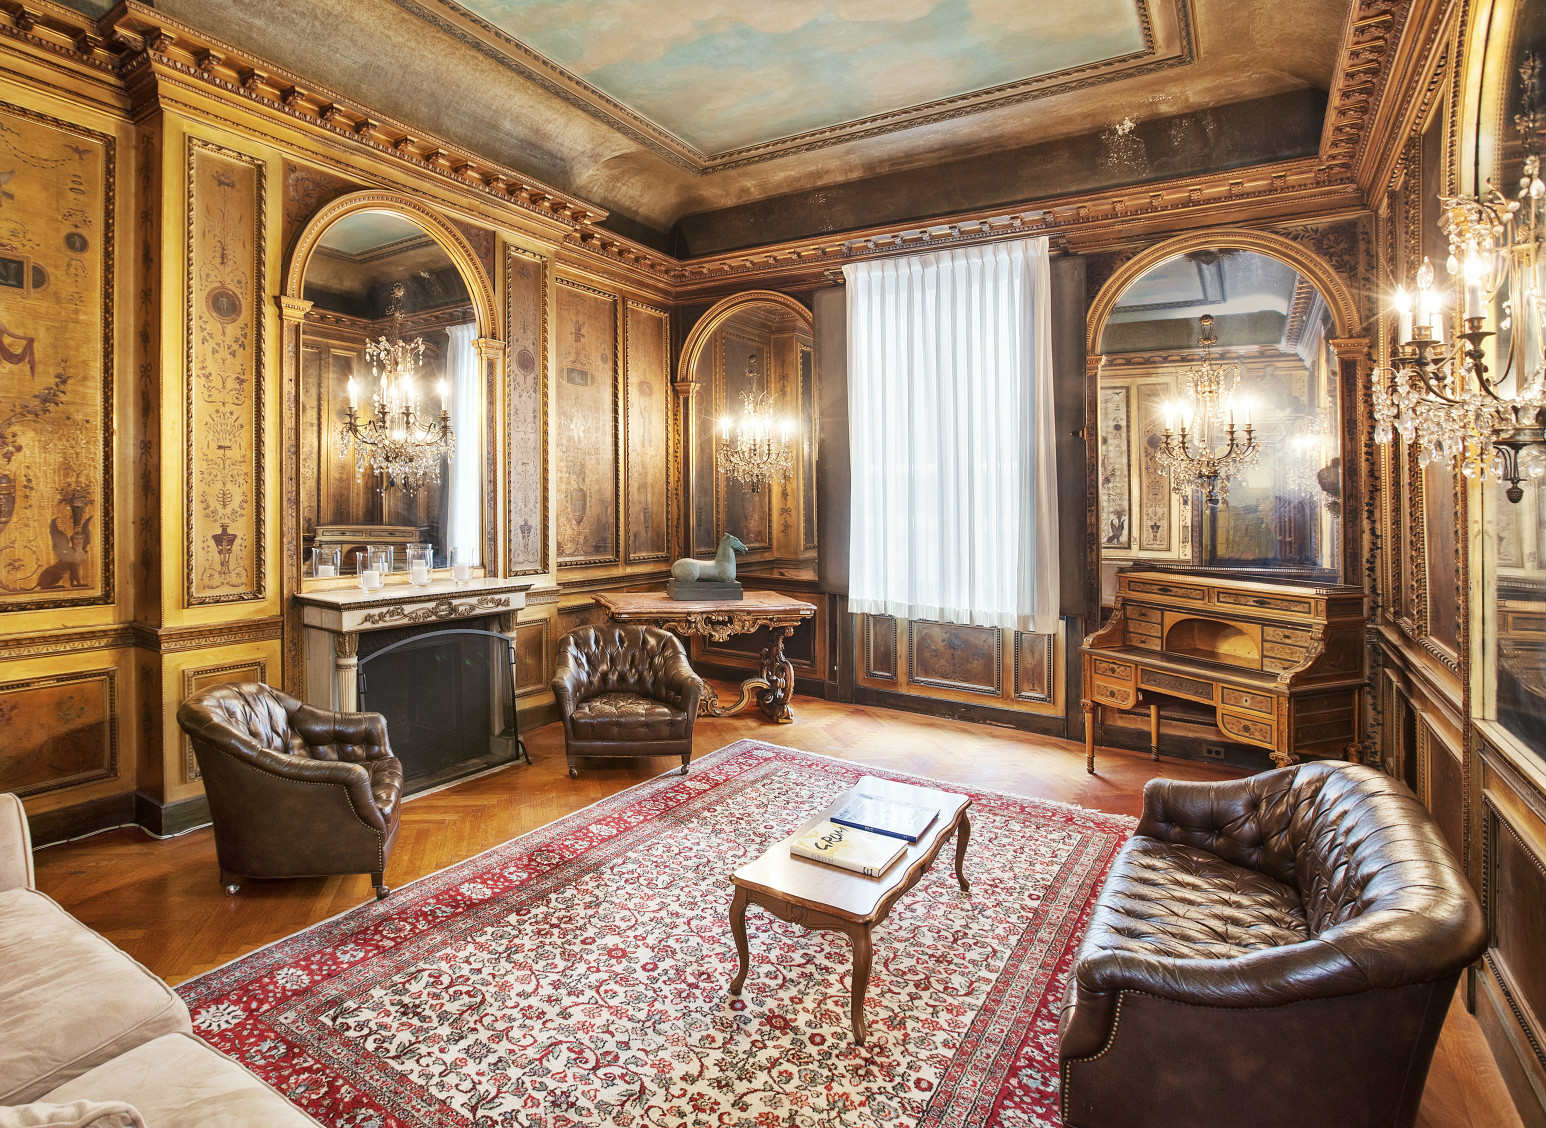 Of Railroad Baron Cornelius Commodore Vanderbilt The Six Story Beaux Arts Building Reflects Grandeur Versailles Throughout Its 32 Rooms